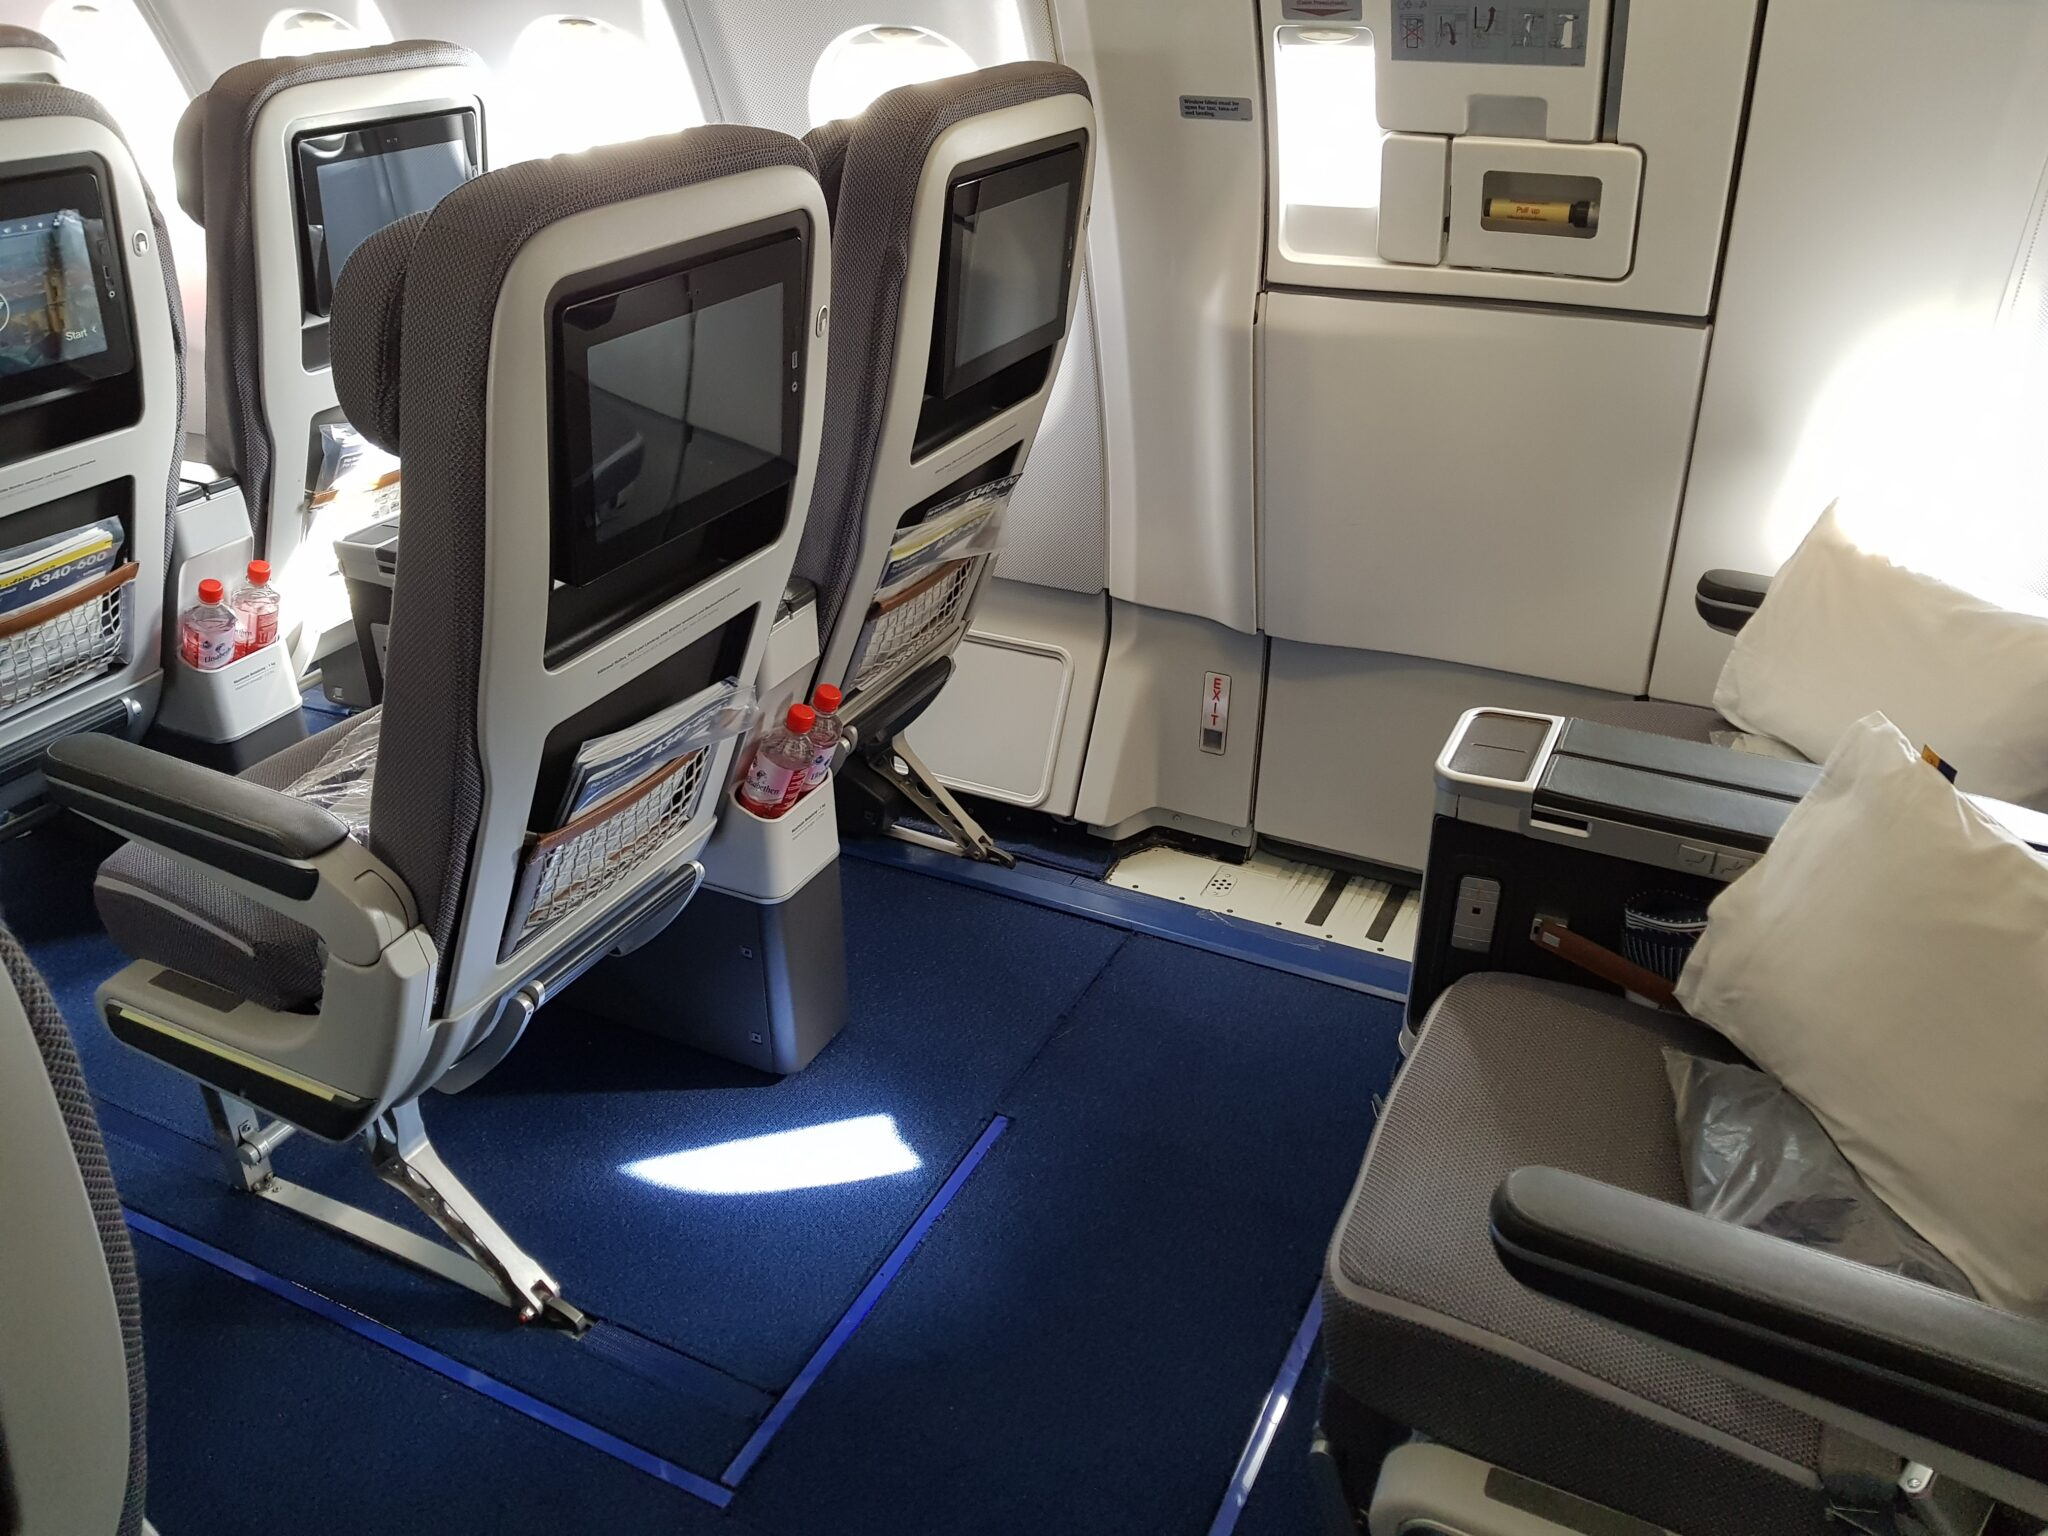 Astounding Lufthansa Premium Economy Review Gmtry Best Dining Table And Chair Ideas Images Gmtryco